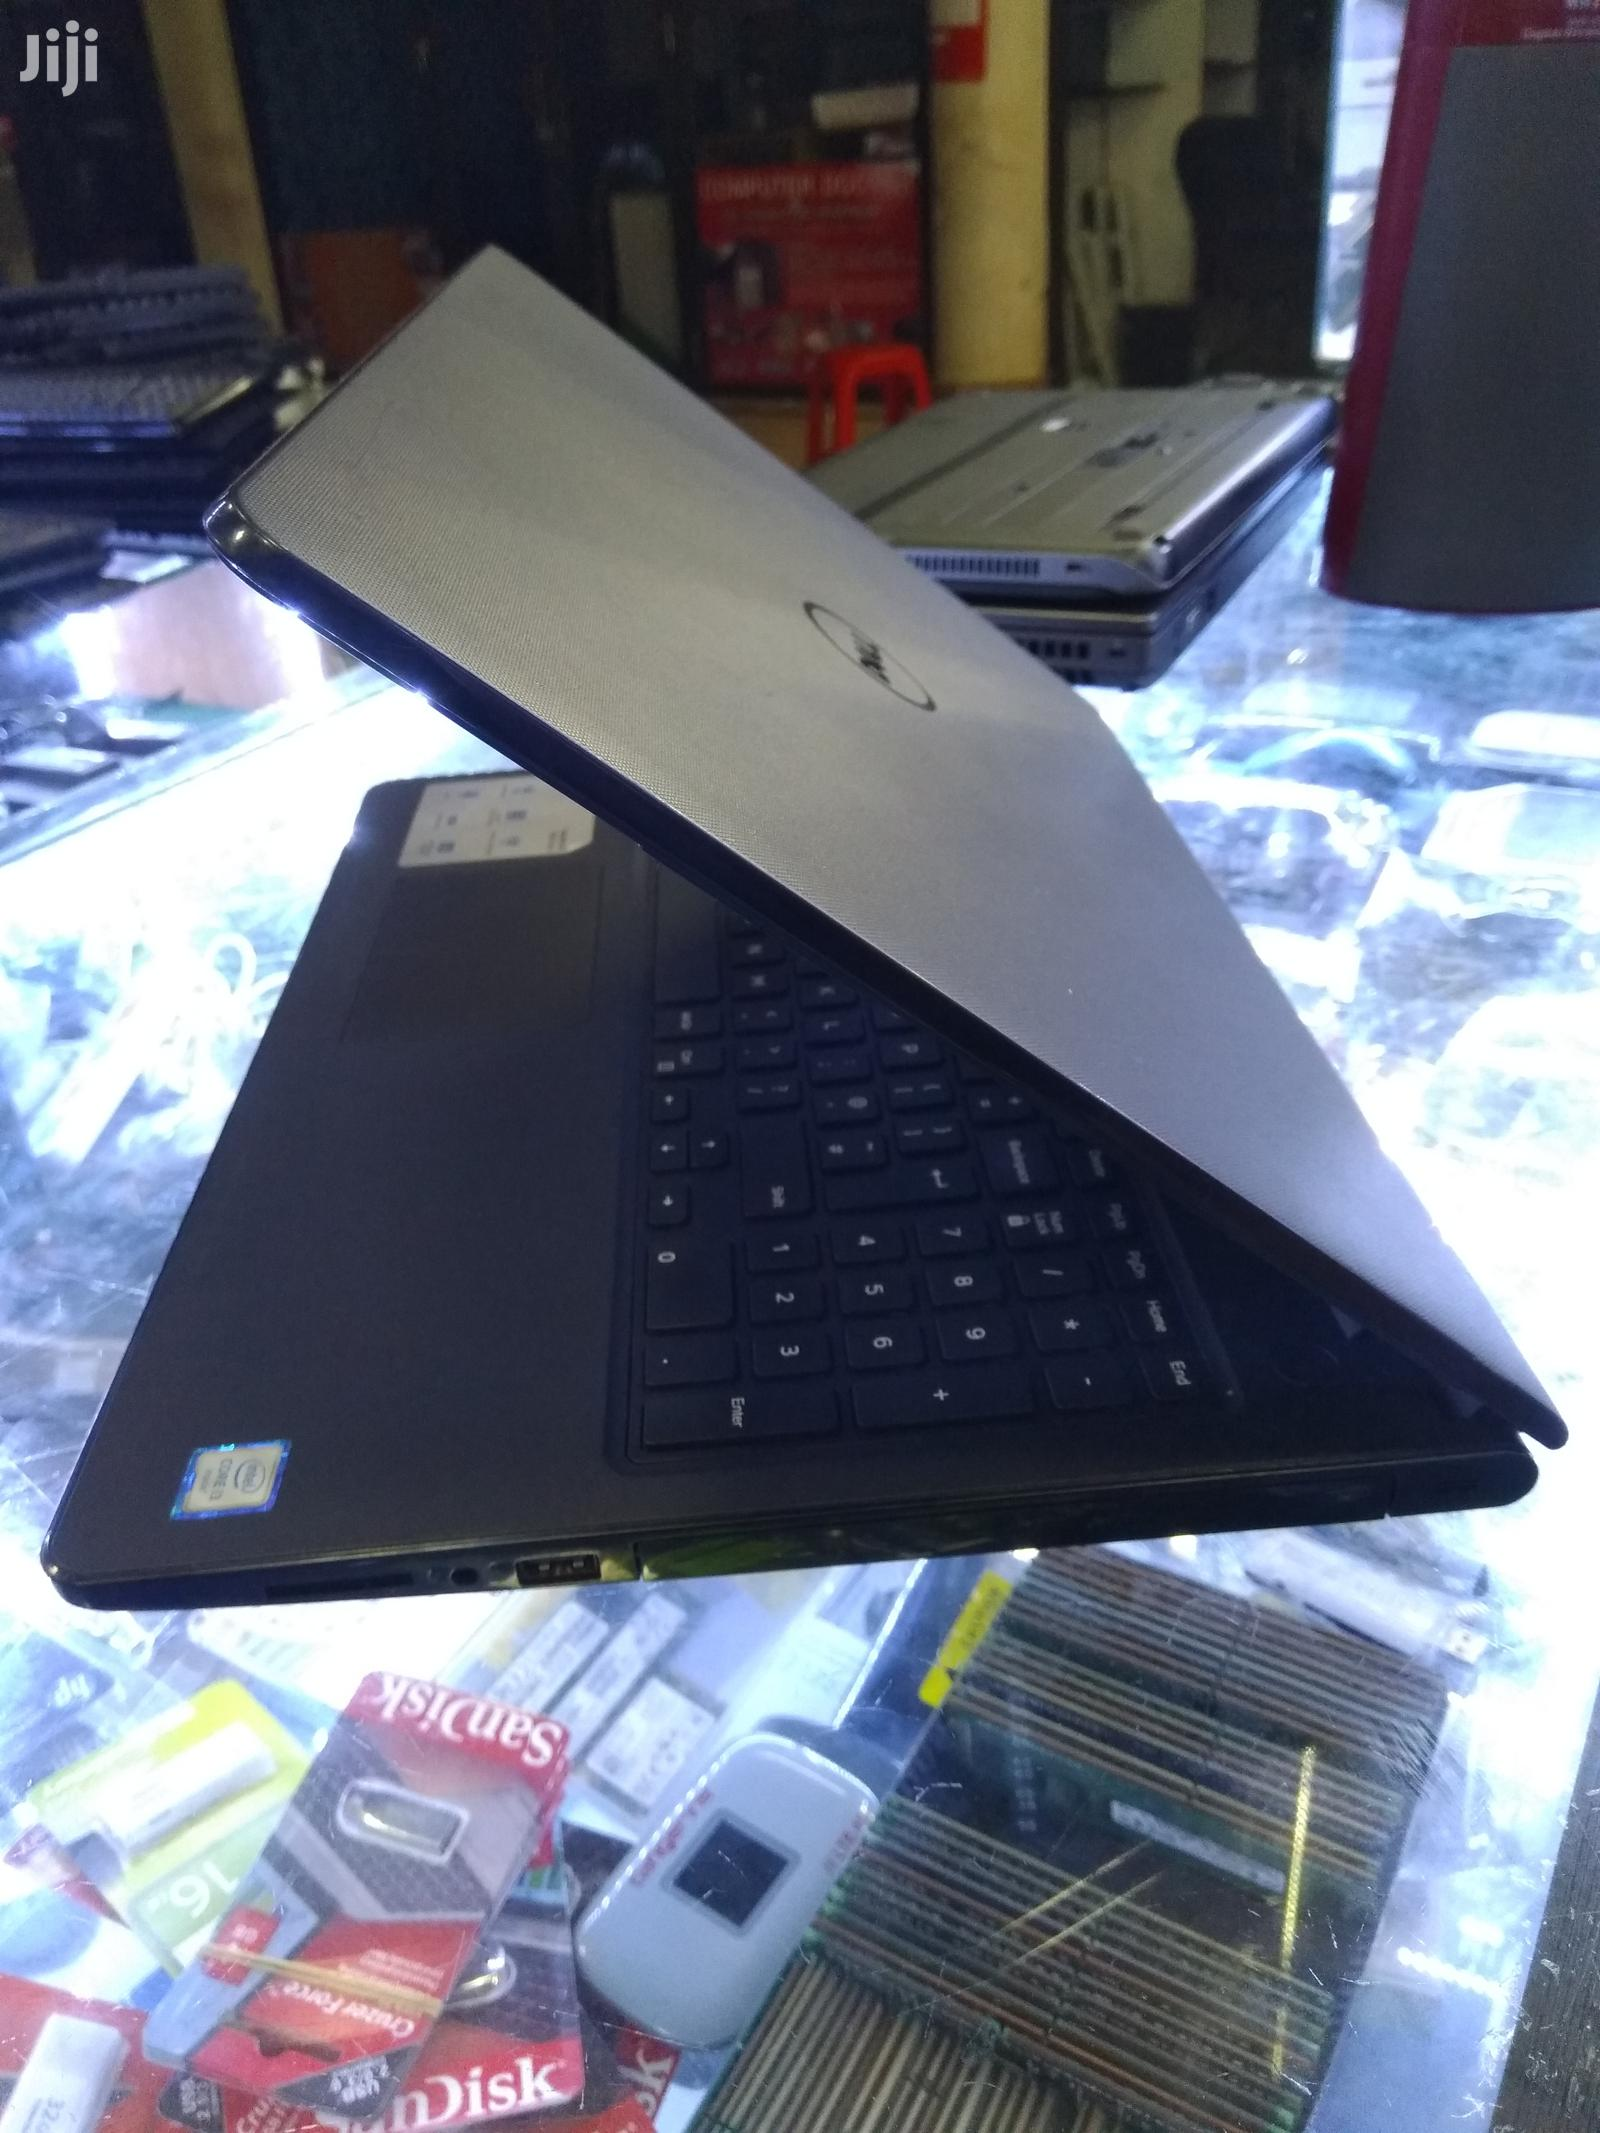 Laptop Dell Inspiron 15 5545 4GB Intel Core I3 HDD 500GB | Laptops & Computers for sale in Kampala, Central Region, Uganda